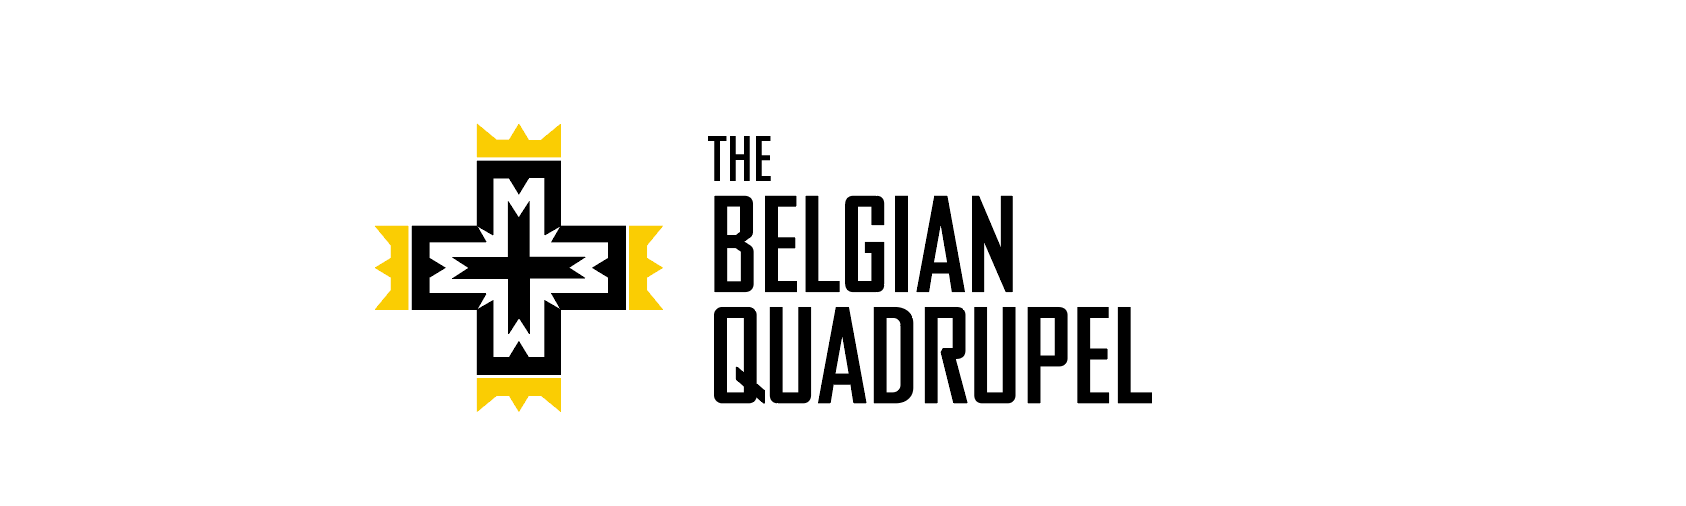 the belgian quadrupel